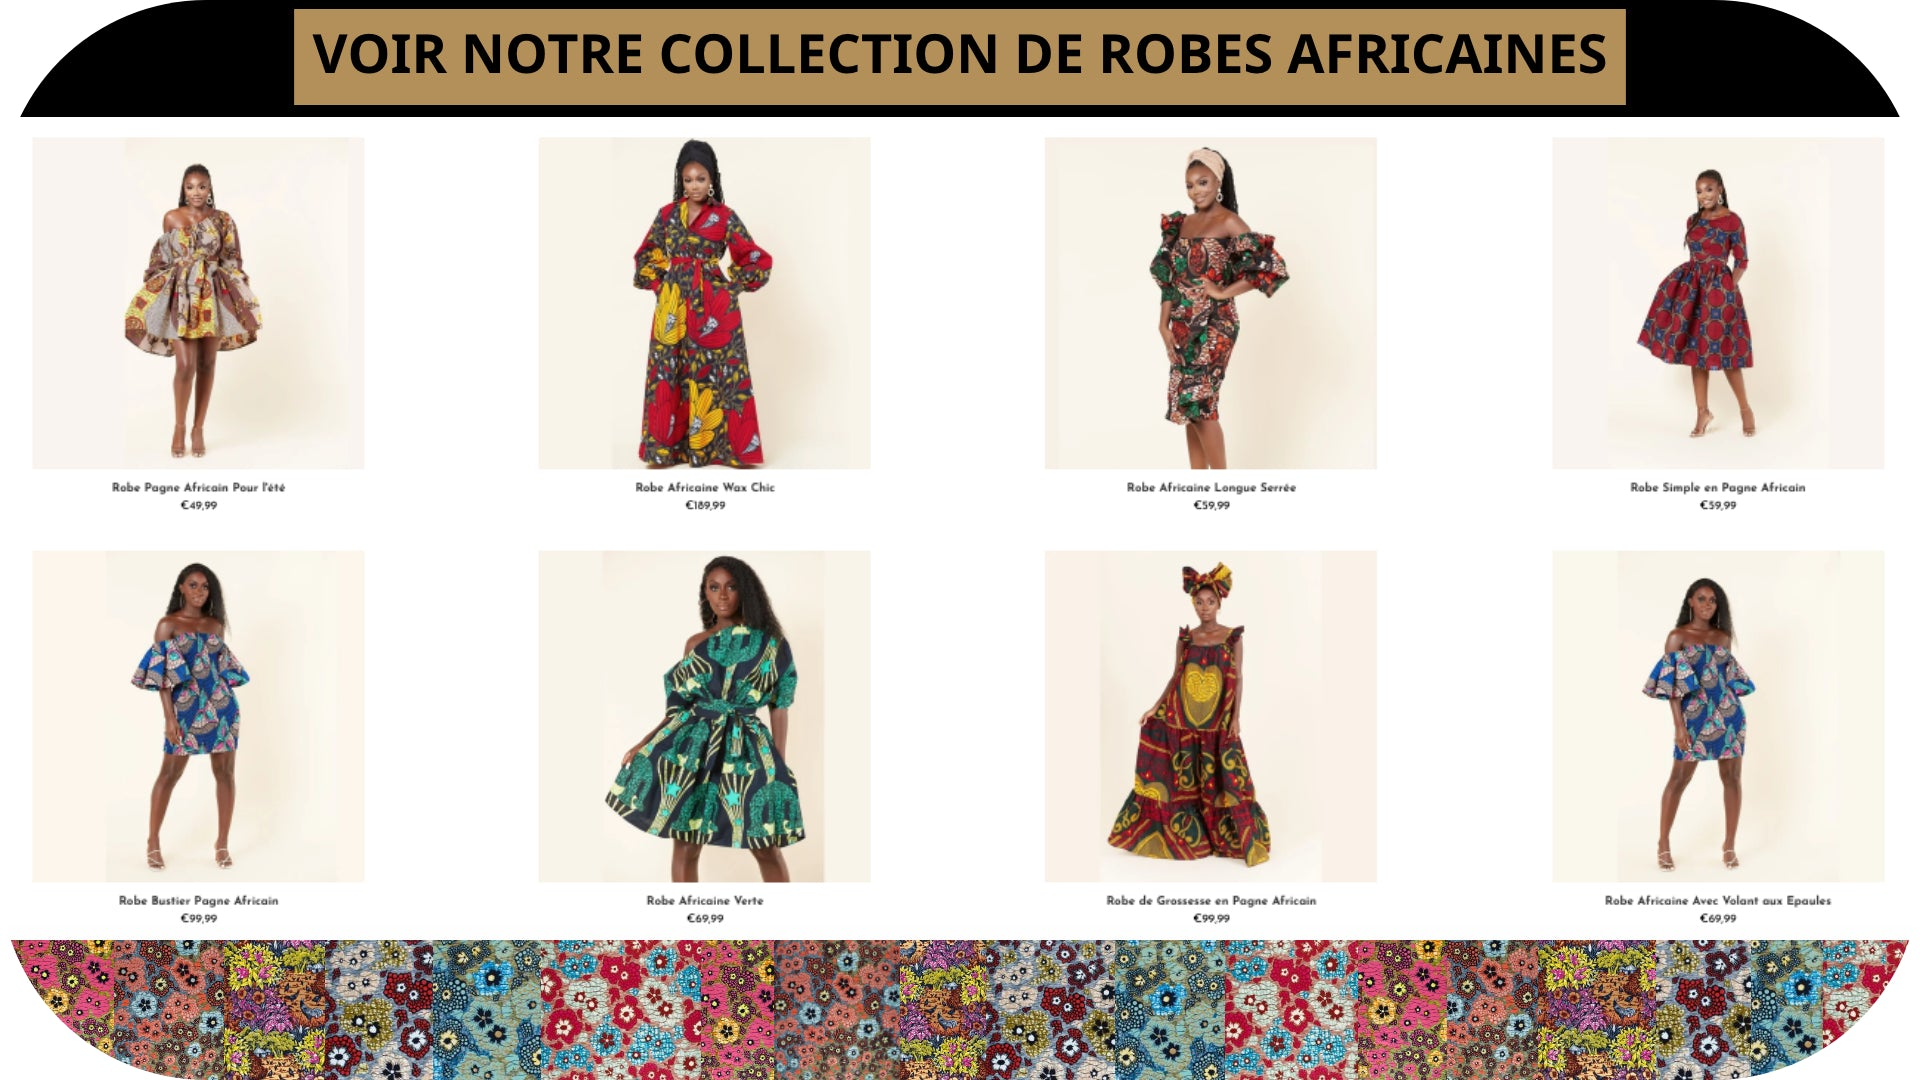 Collection robe africaine - Royaume d'Afrique